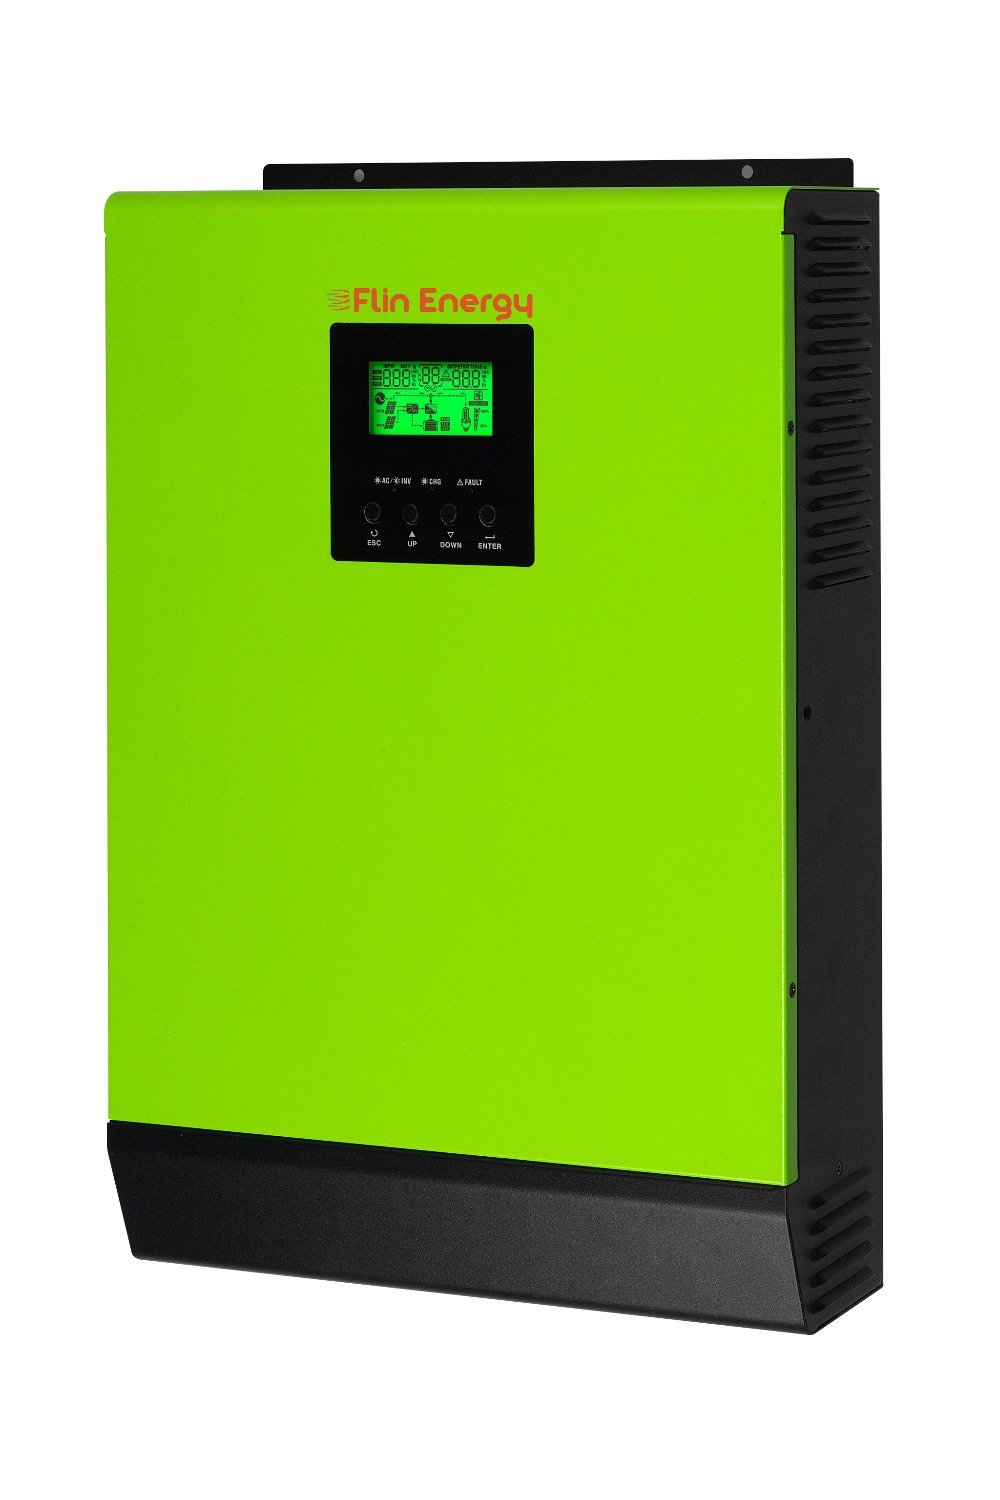 Flin Energy Lite 5kW-48V Smart Solar Hybrid OnGrid Inverter with Battery  Backup (Green and Black)